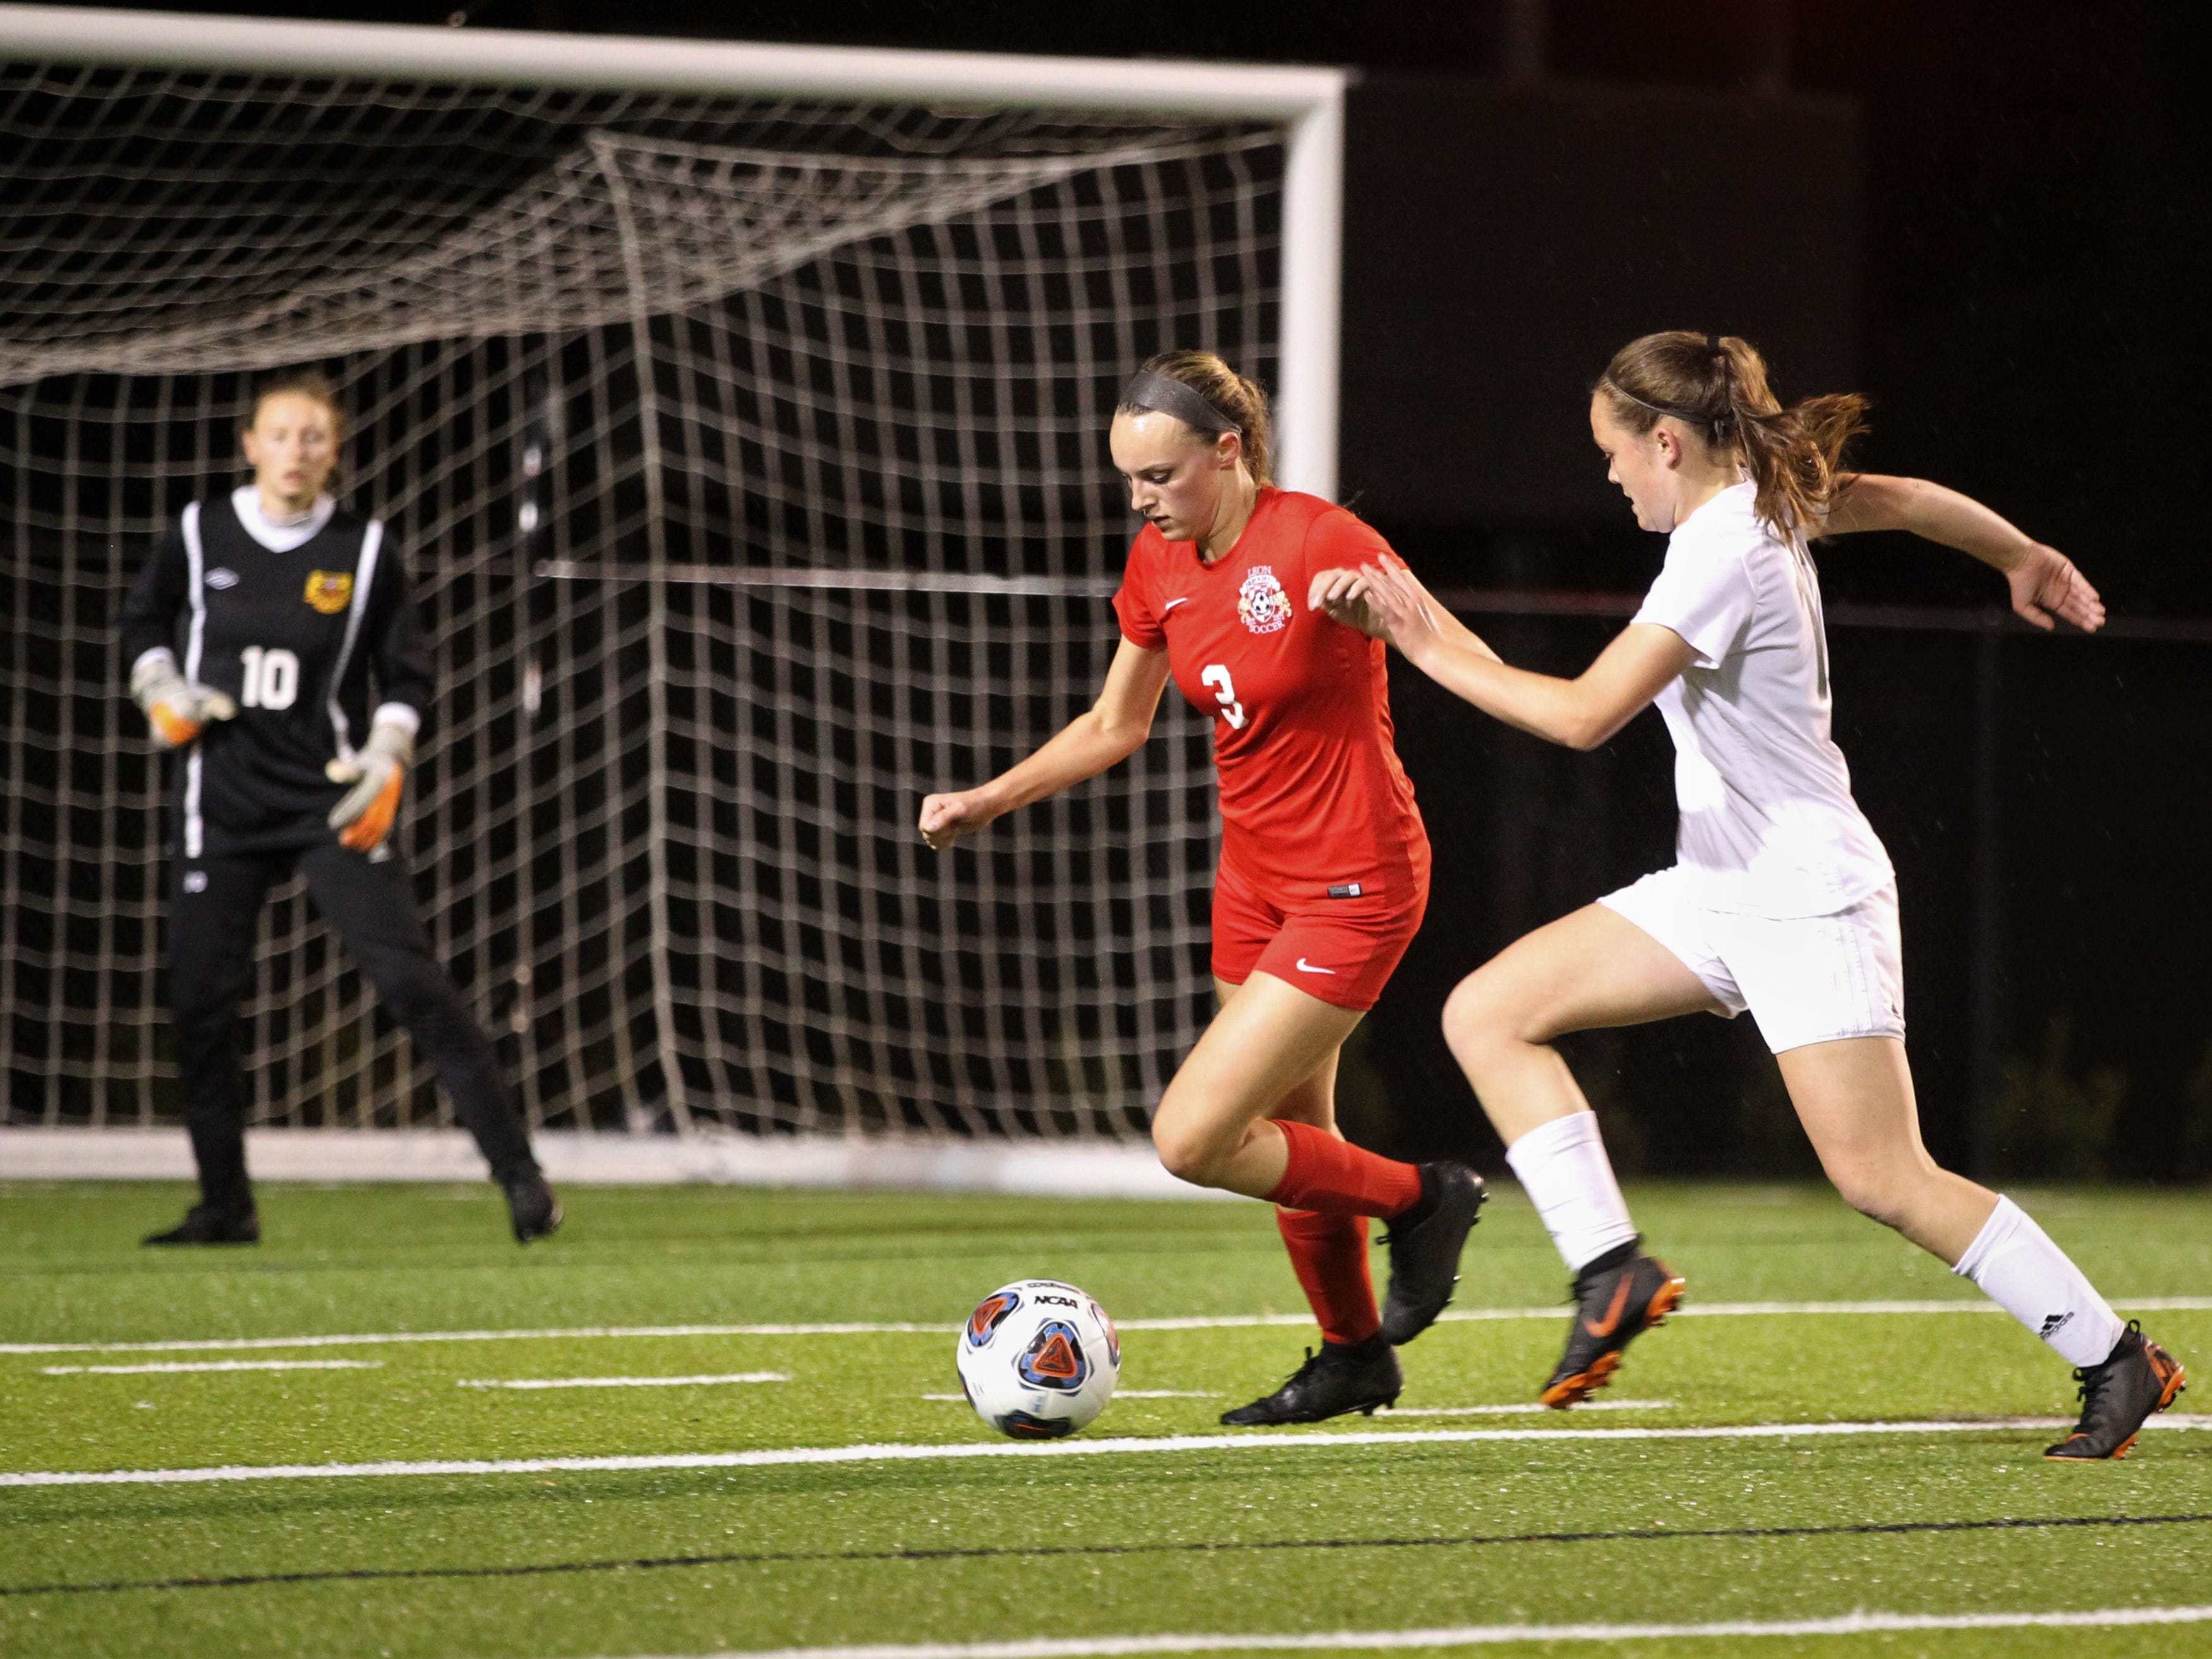 Leon defender Madison Rumenik tries to dribble clear of Lincoln's Meredith Camron in the box as Leon's girls soccer team beat Lincoln in the District 2-4A championship on Feb. 1, 2019.